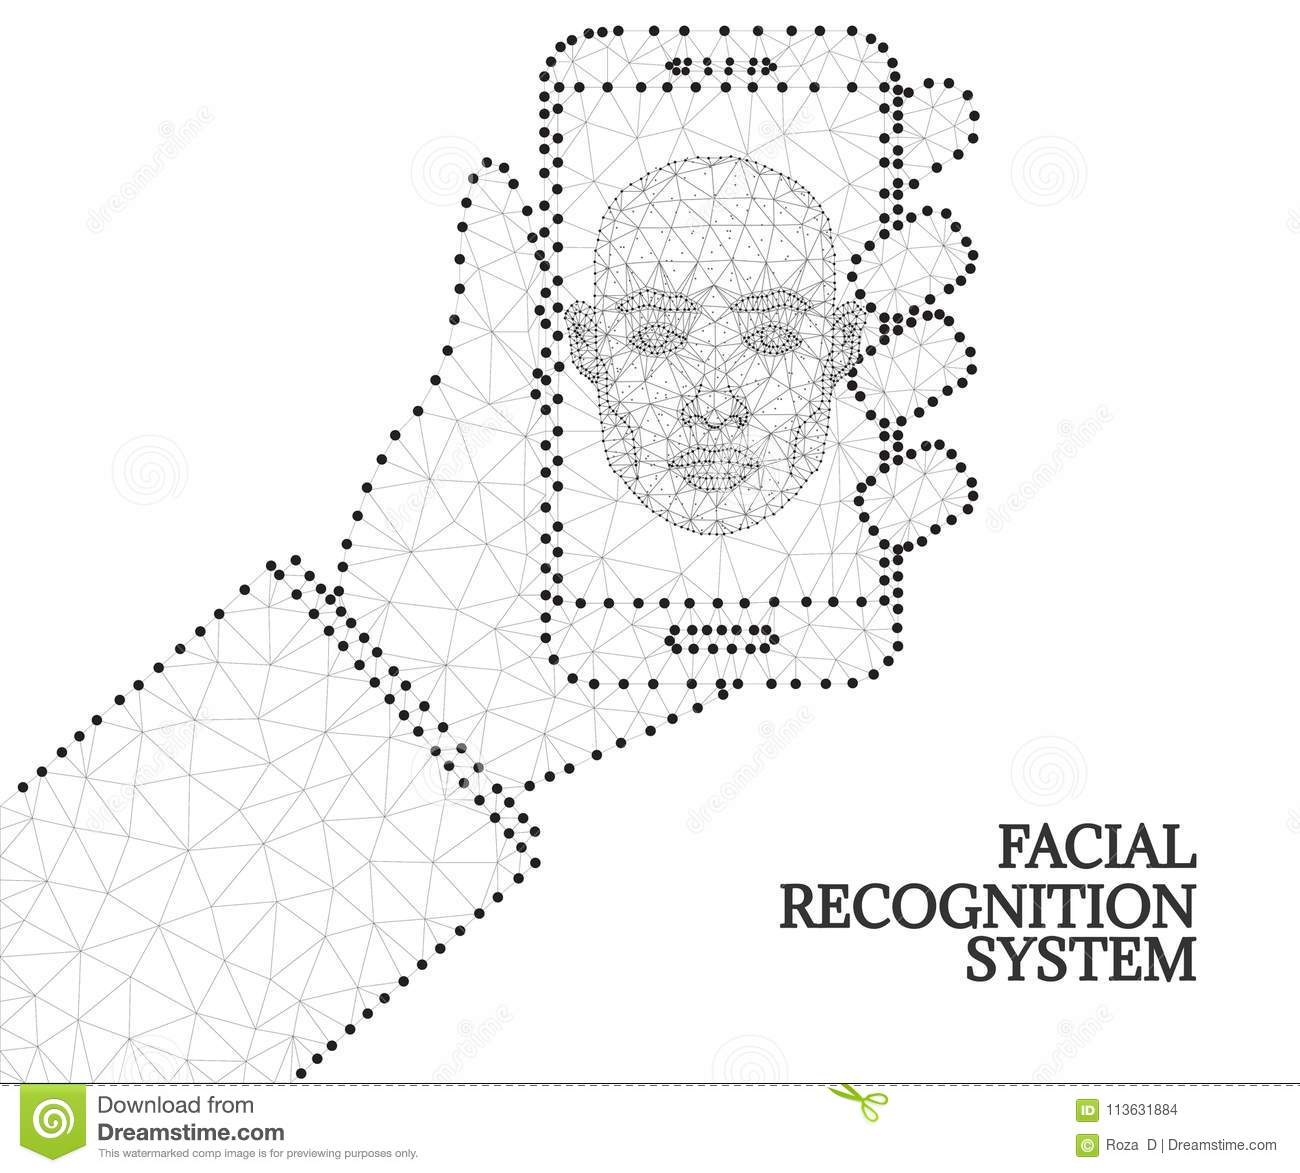 Facial Recognization System